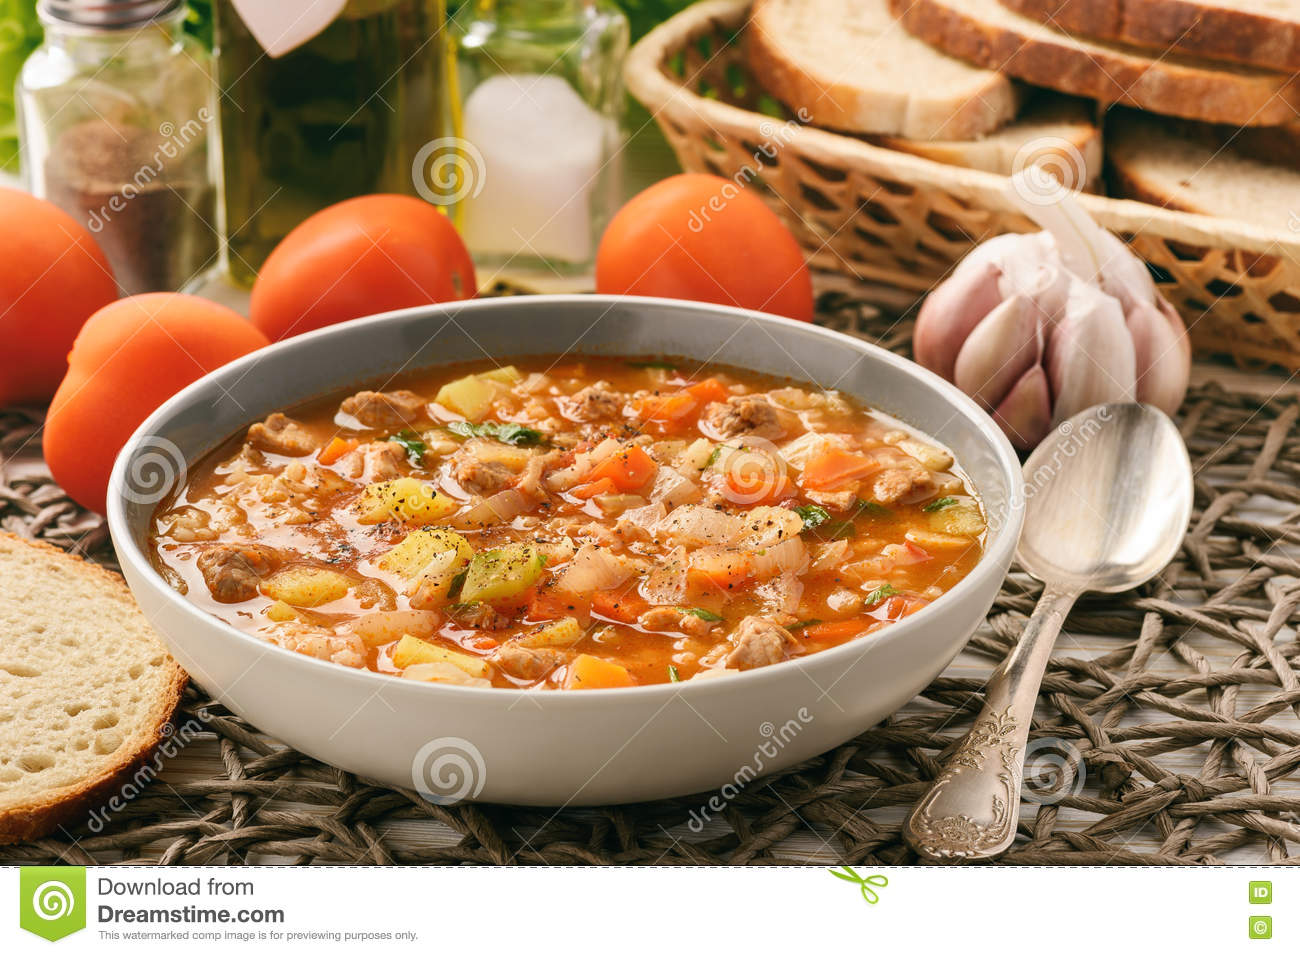 Nutrient soup with meat, rice and vegetables - mastava uzbek kitchen.